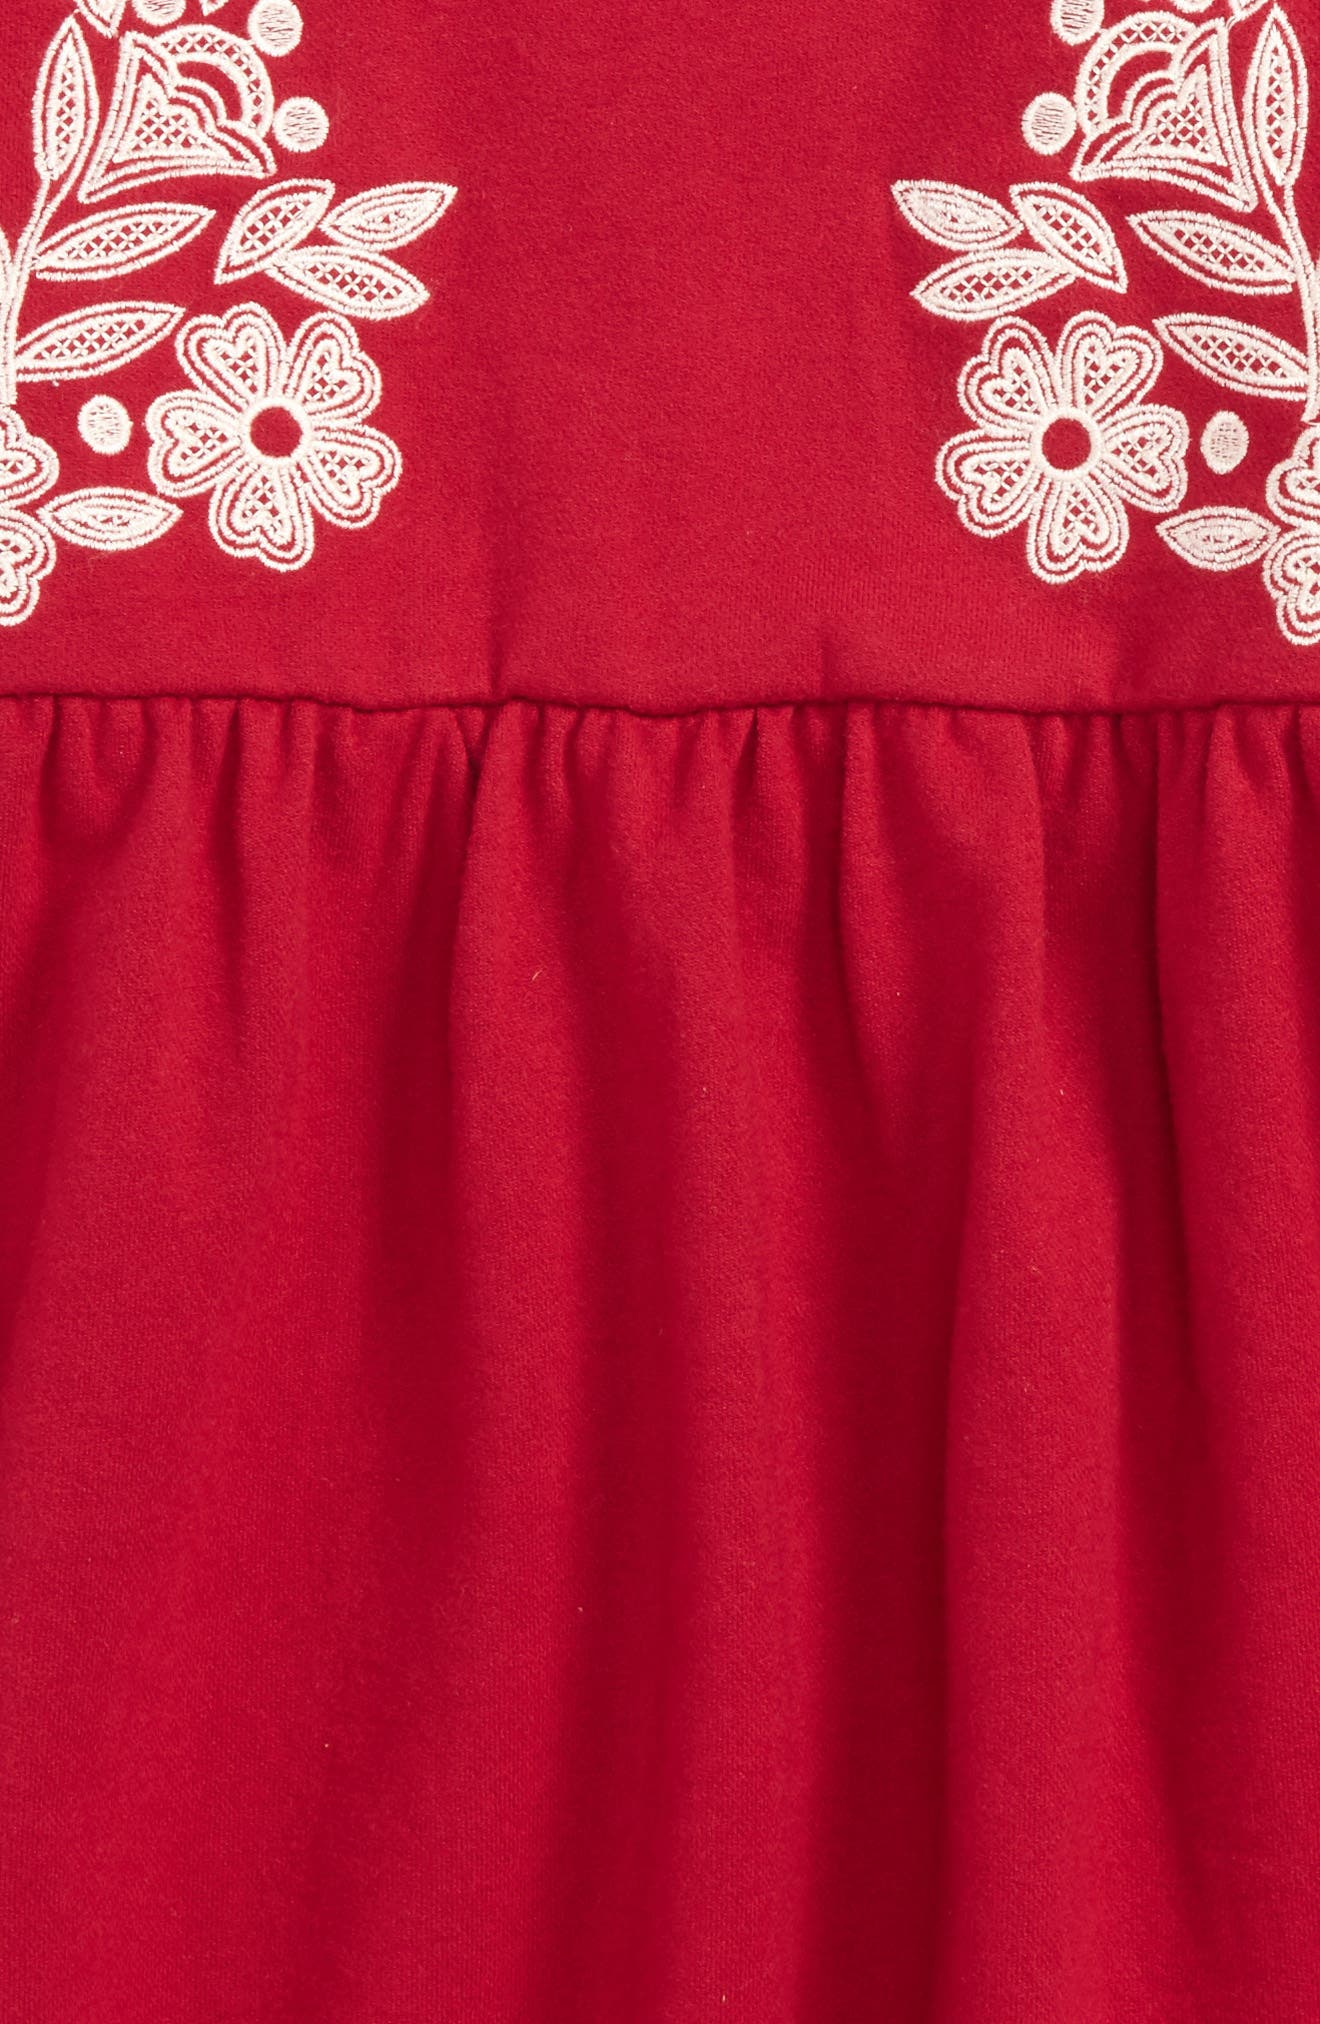 Ailsa Embroidered Dress,                             Alternate thumbnail 2, color,